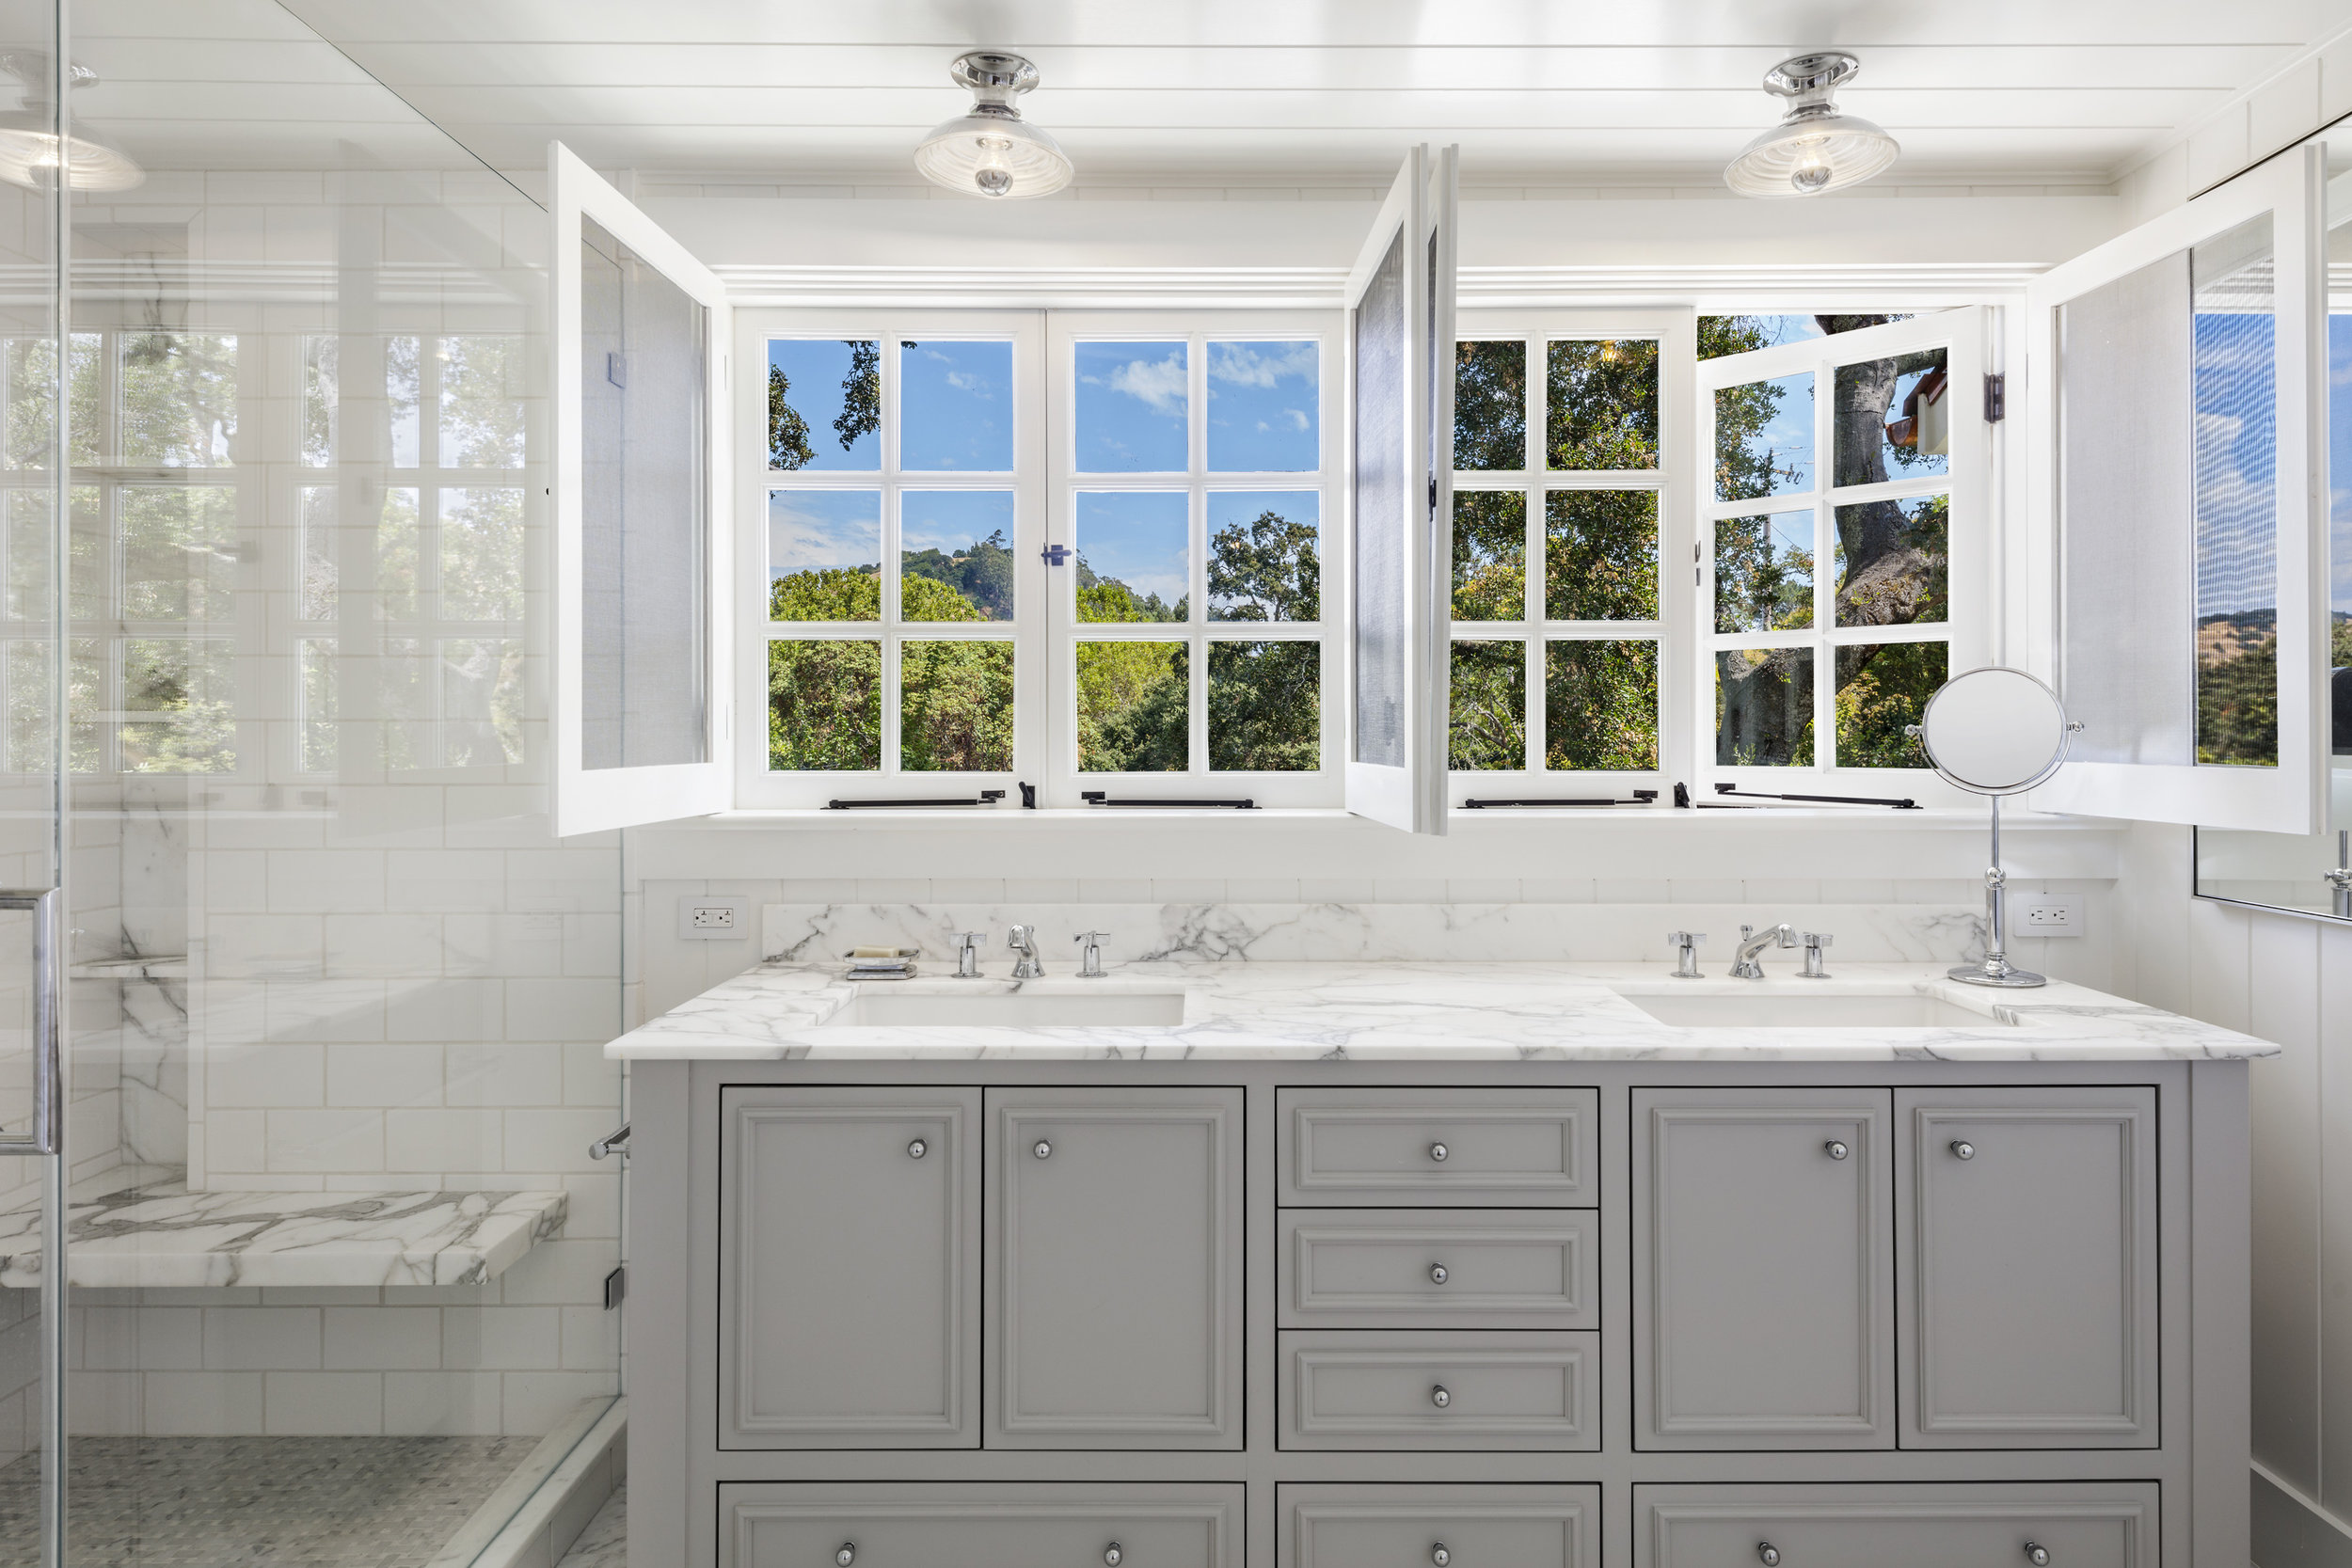 48-Raymond-Ave-San-Rafael-masterbath-3872-high-res.jpg